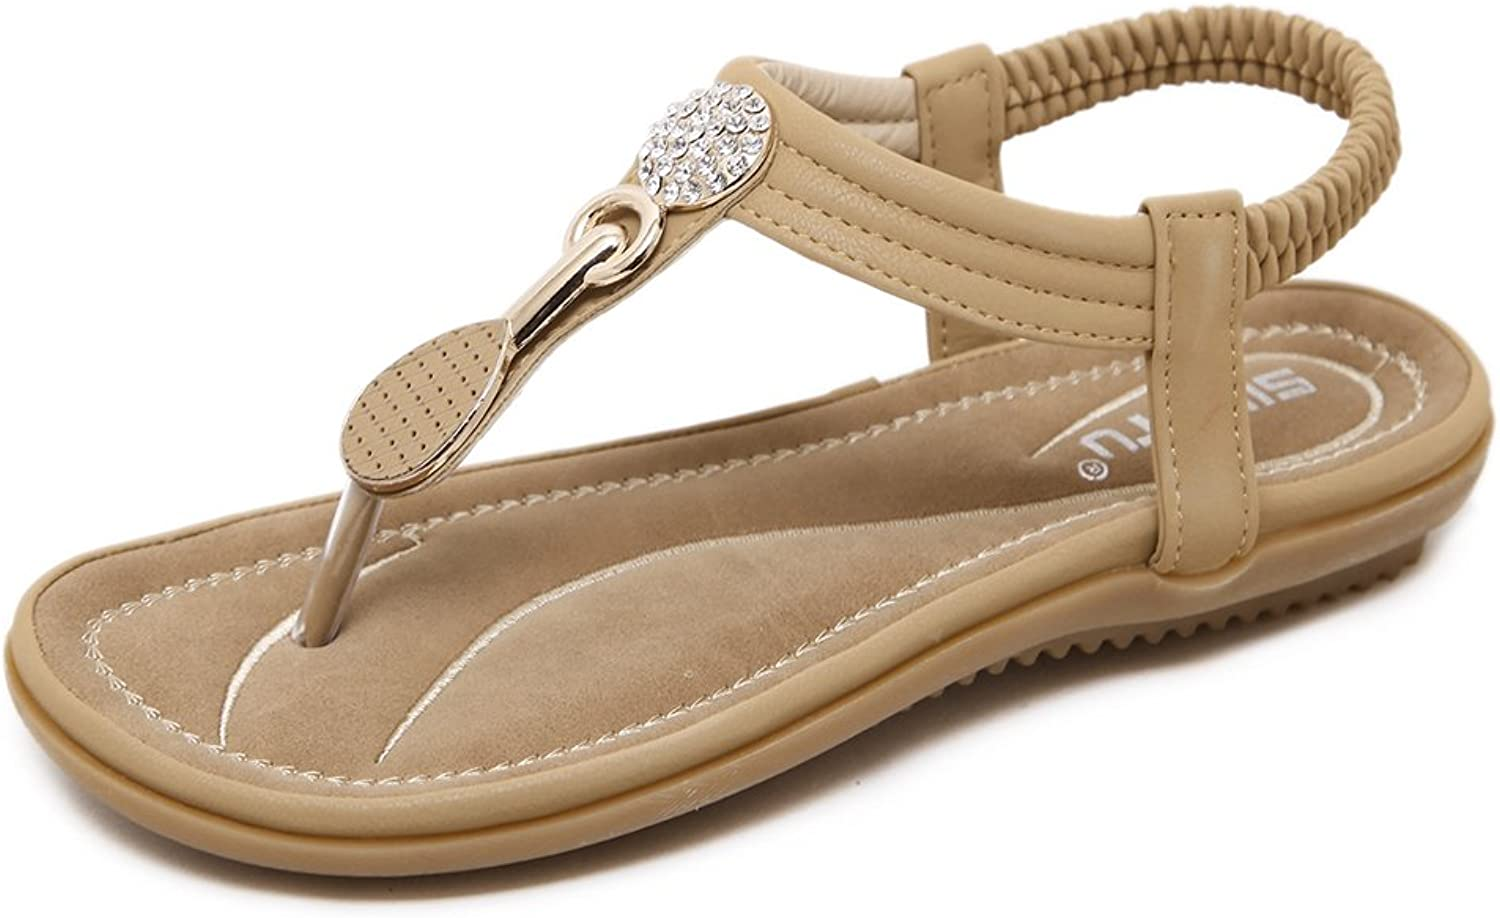 Baviue Women's Jeweled Leather Thong Sandals Fashion Flip Flop